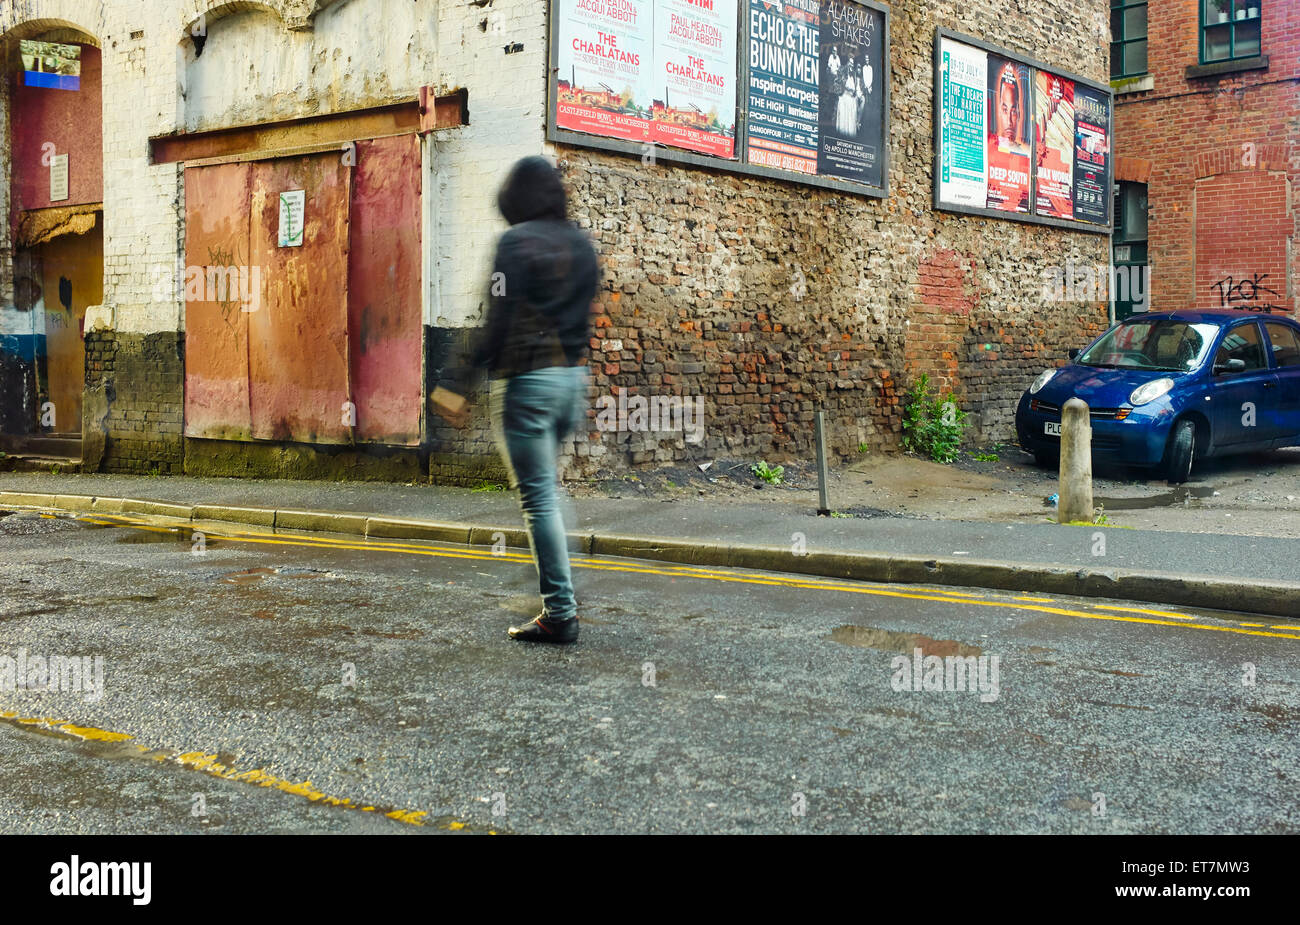 Northern quarter, Manchester person in street scene - Stock Image